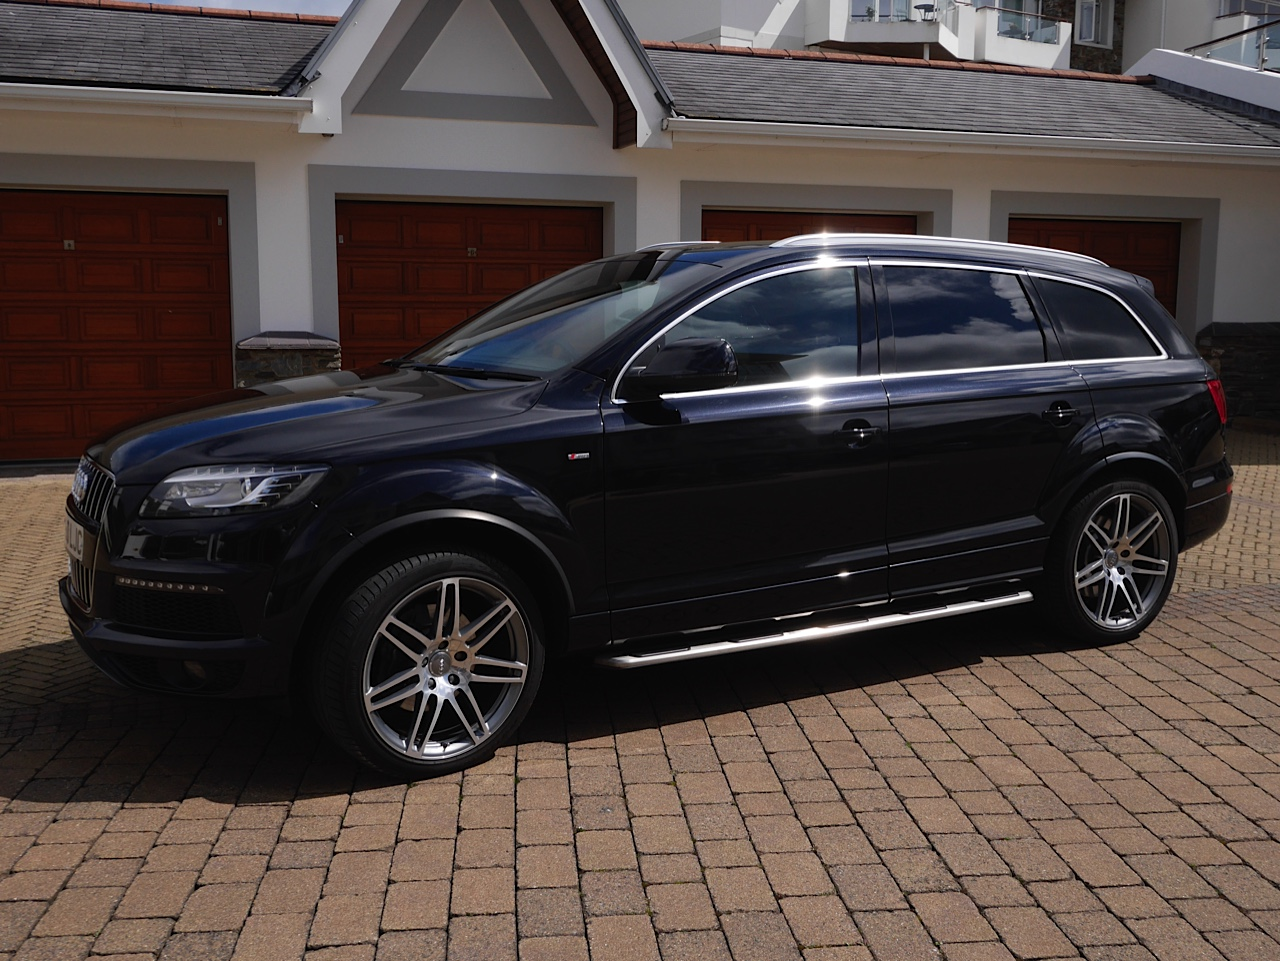 Audi Q7 4.2 from private